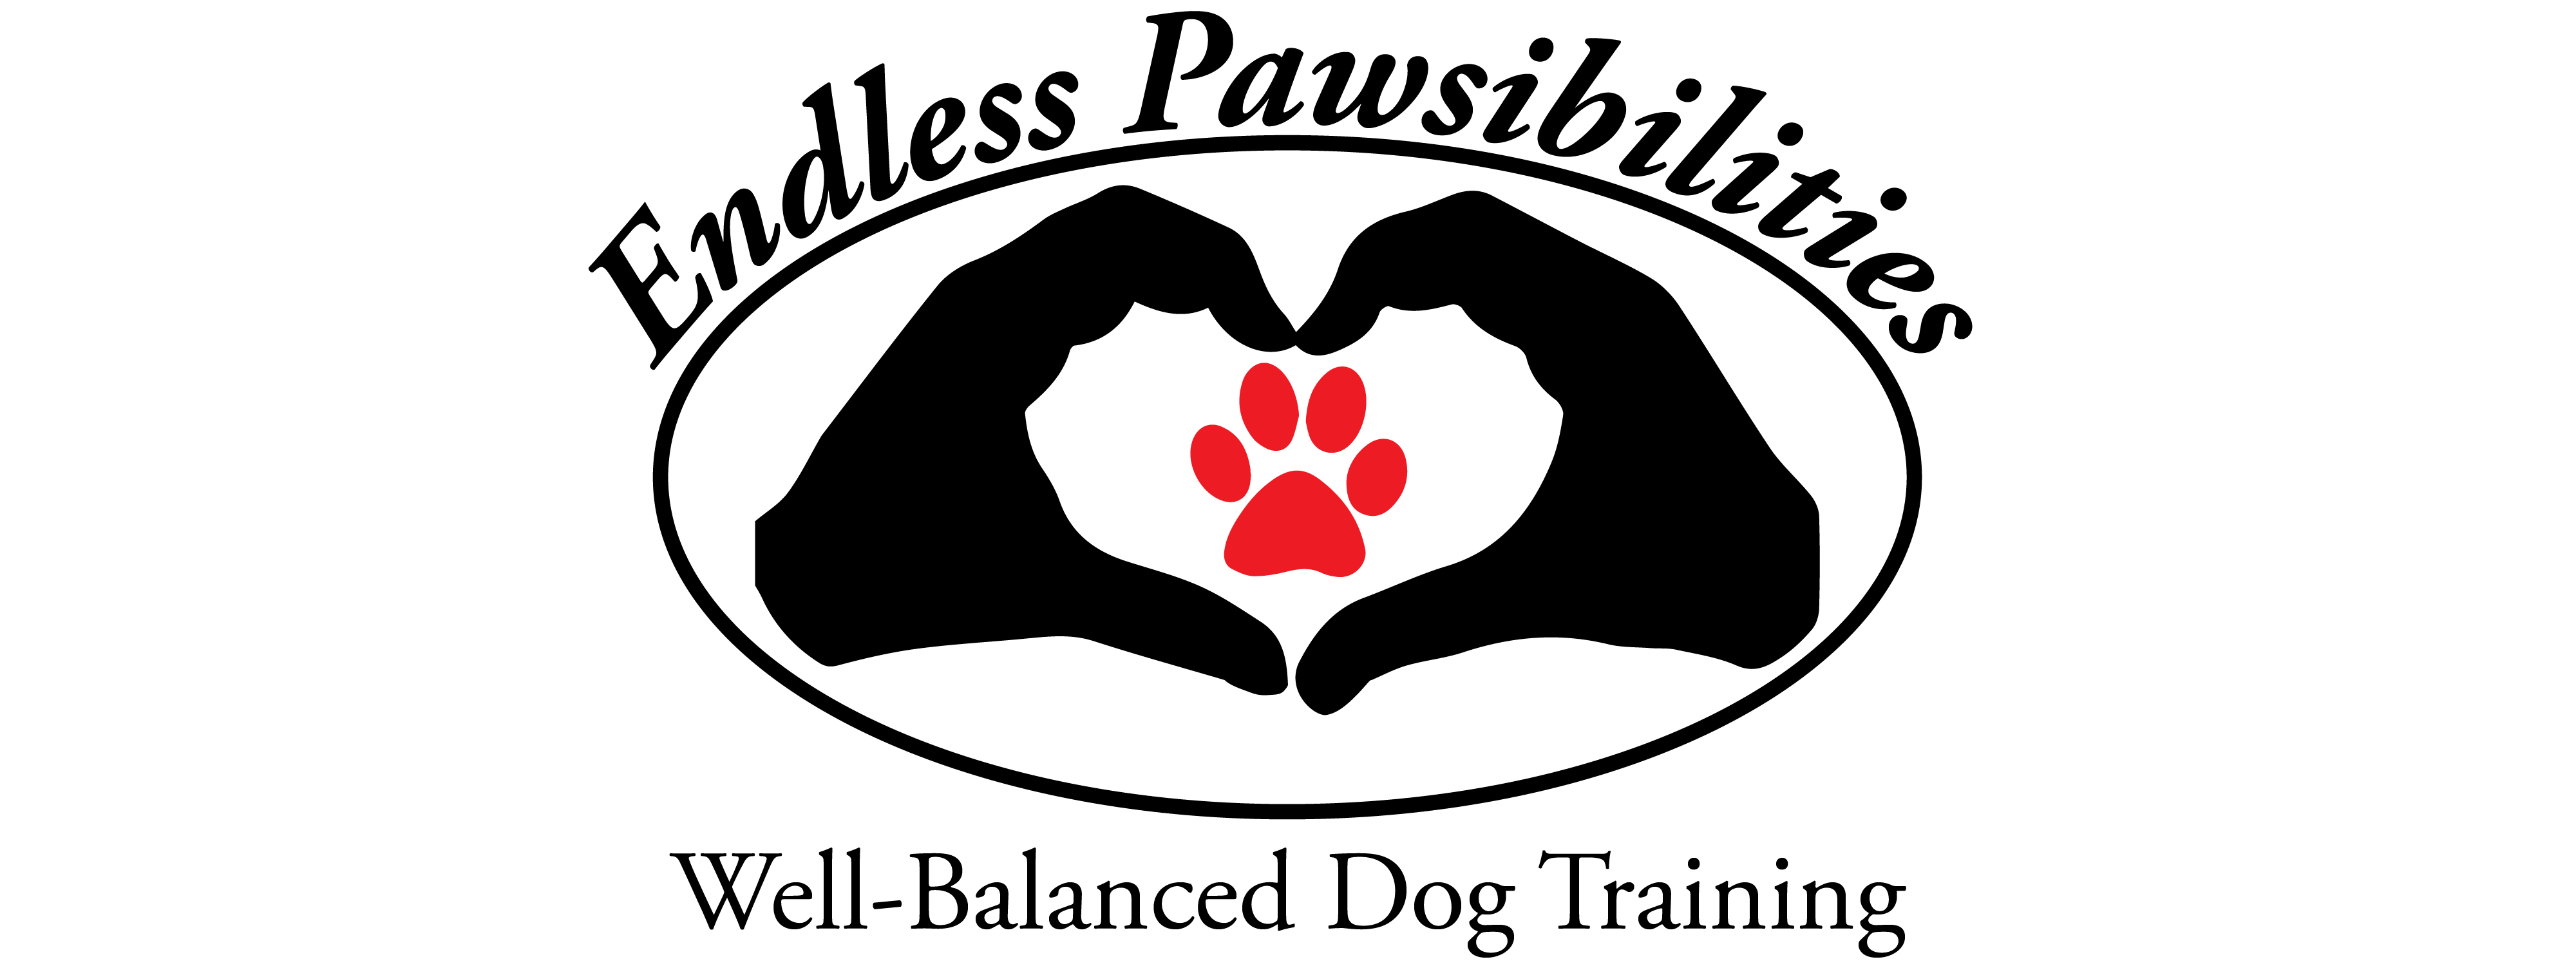 -Endless Pawsibilities